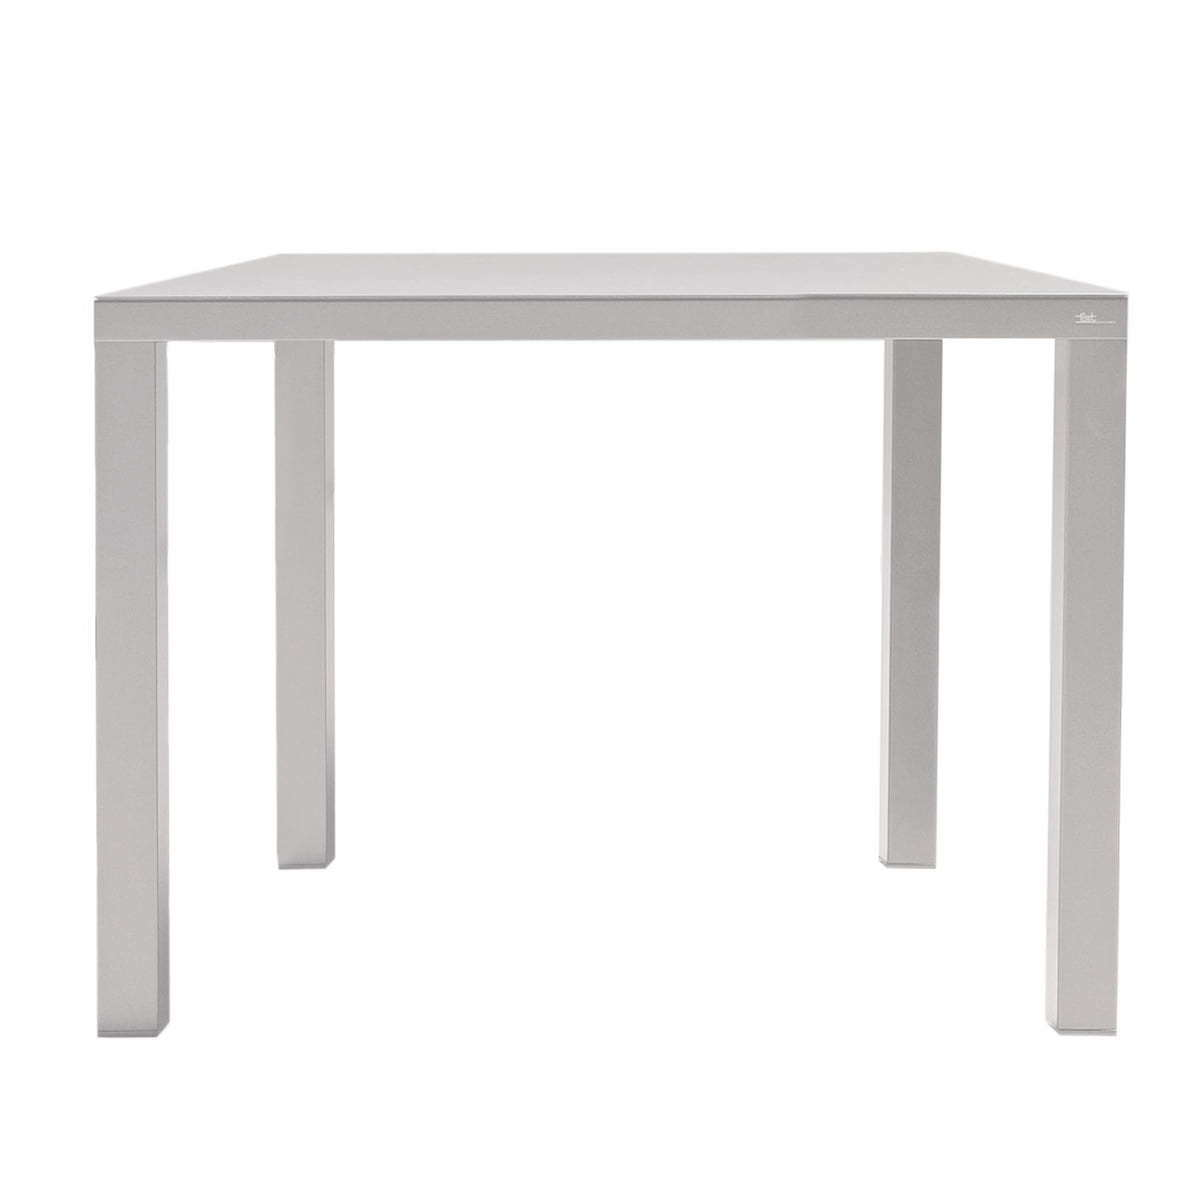 Easy Table E